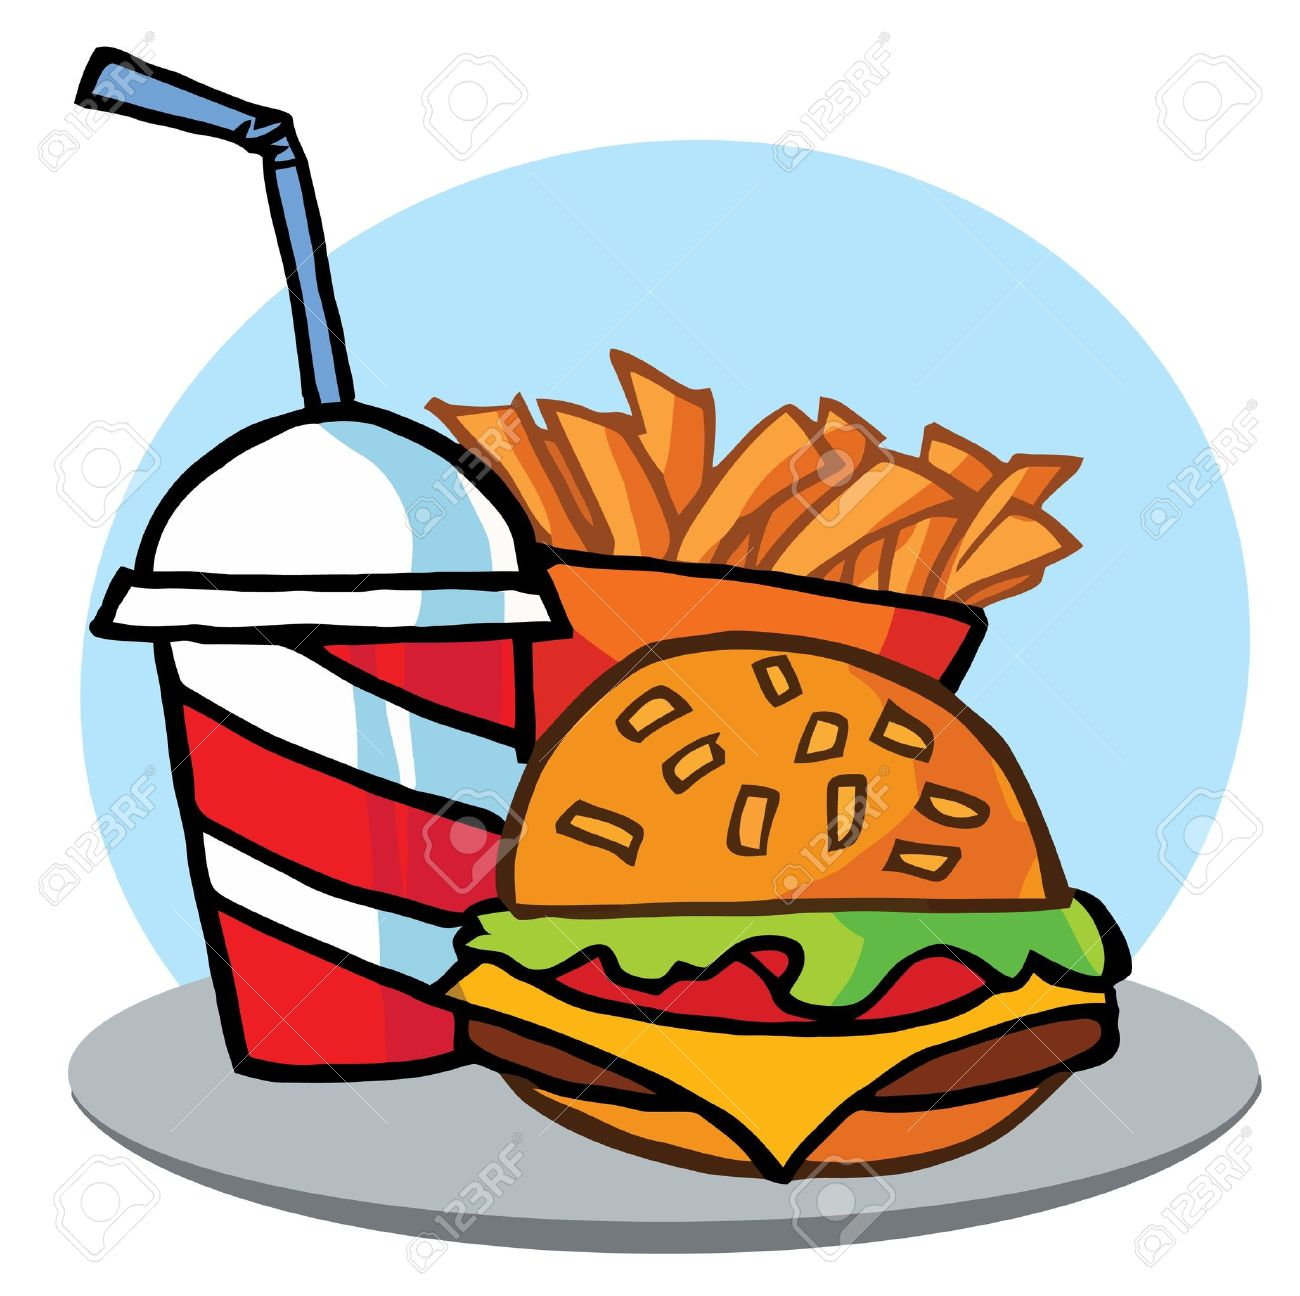 Unhealthy Food Clipart For Kids.